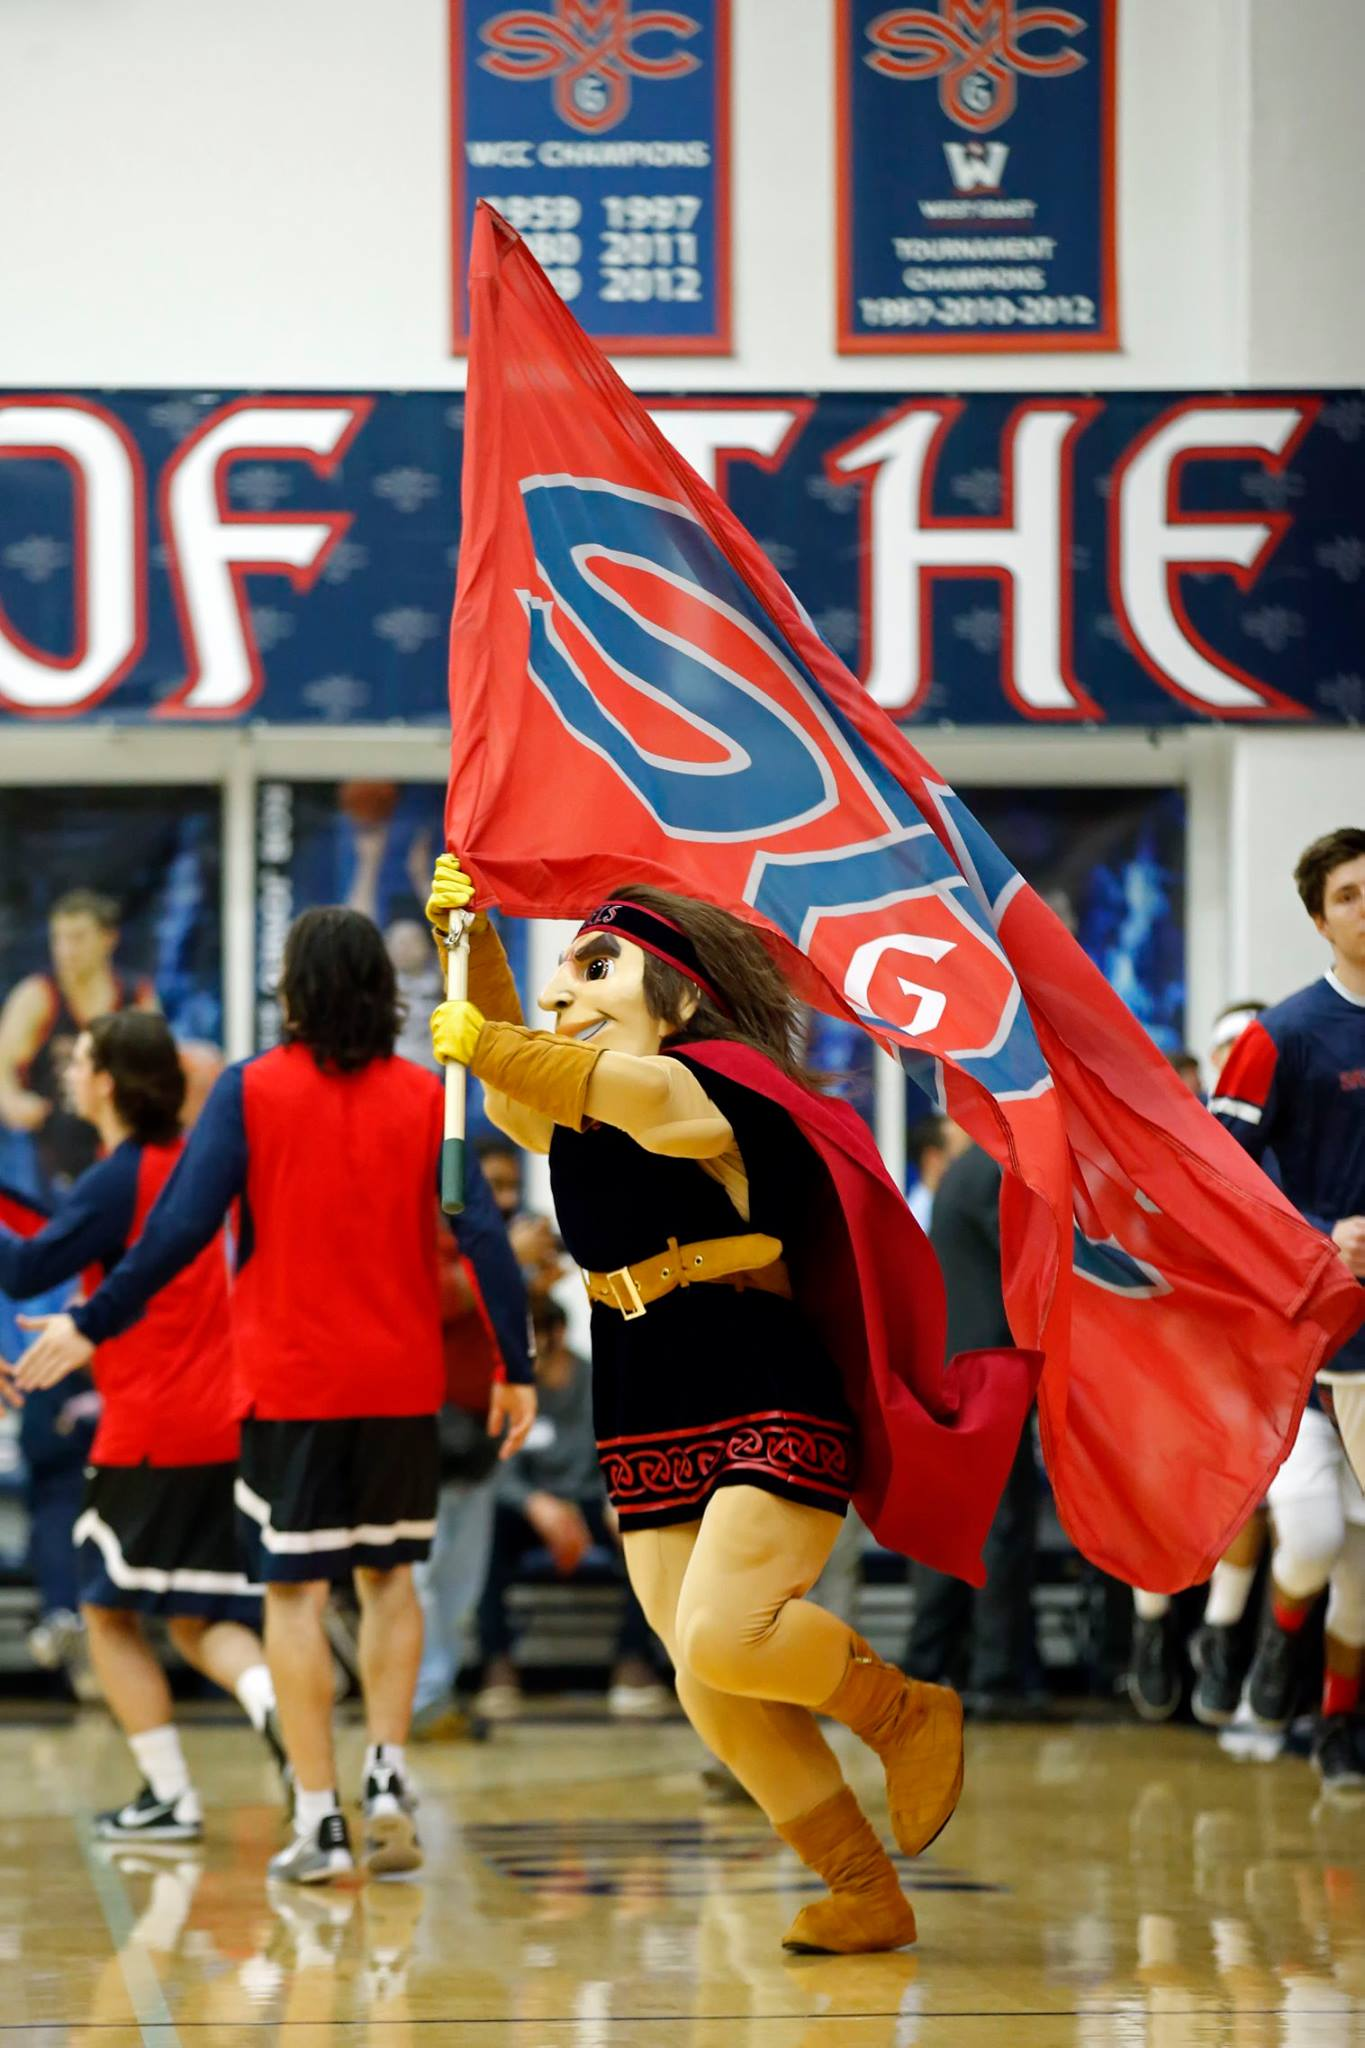 <p>Let's Go Gaels</p>